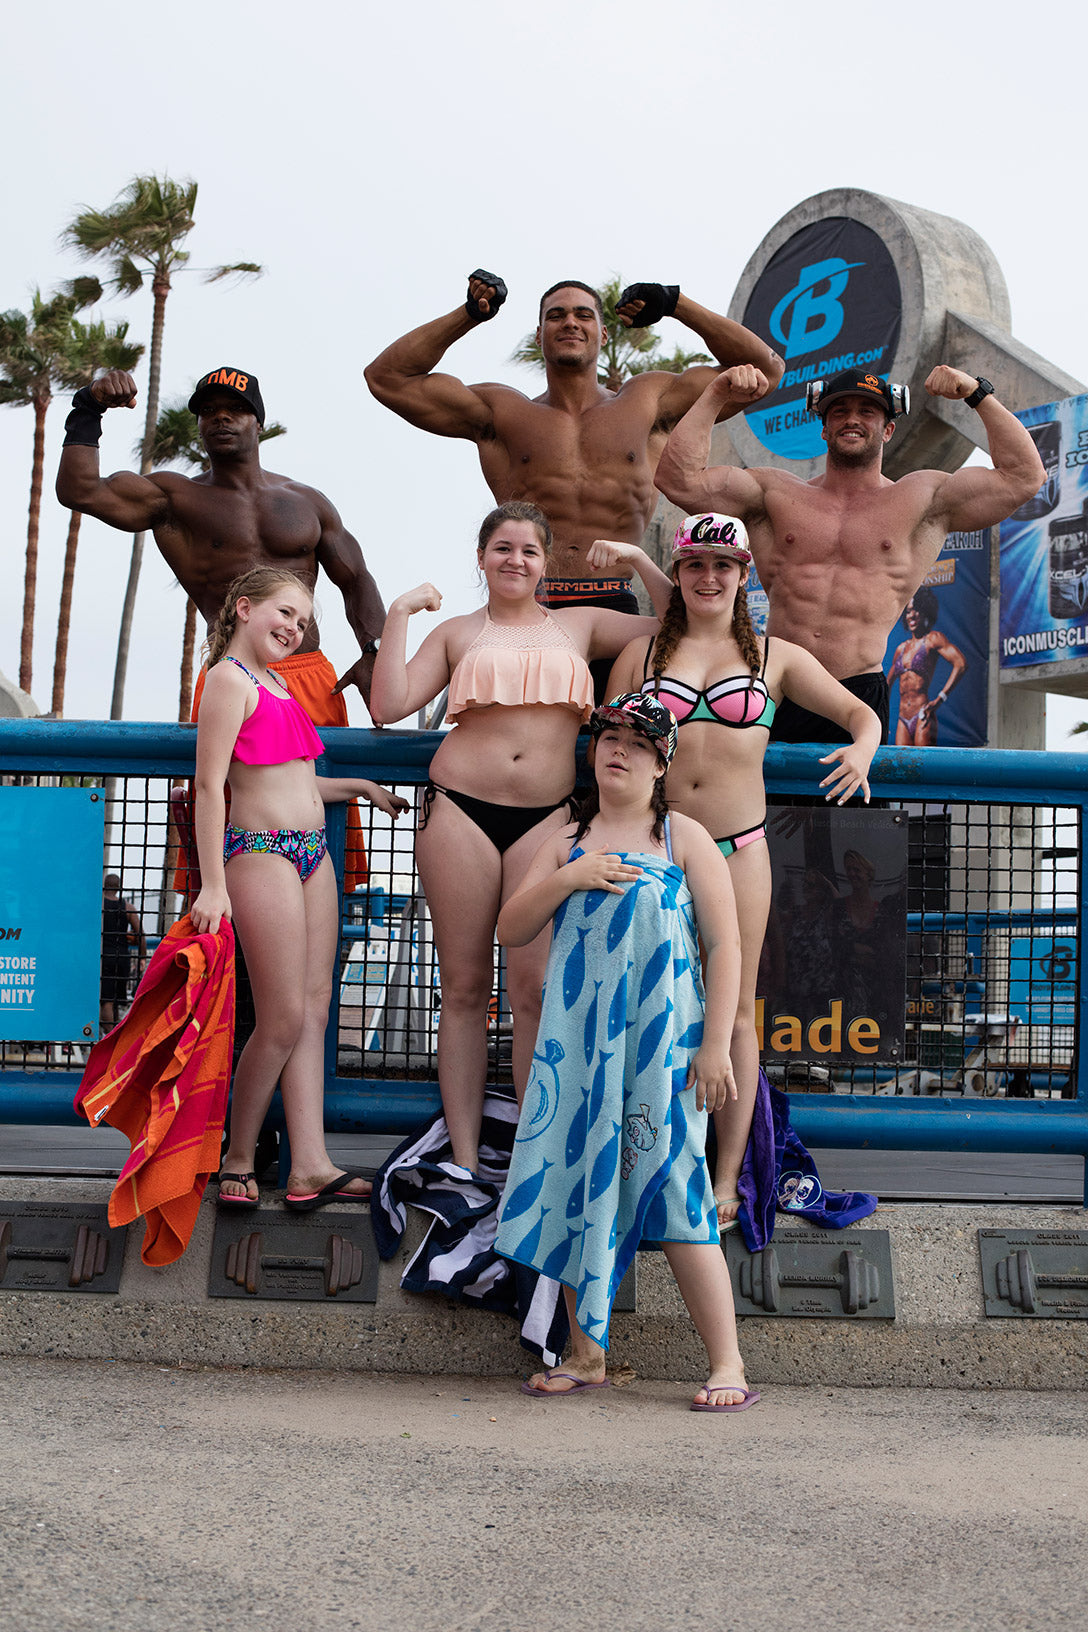 venice beach body builders pose with group of people